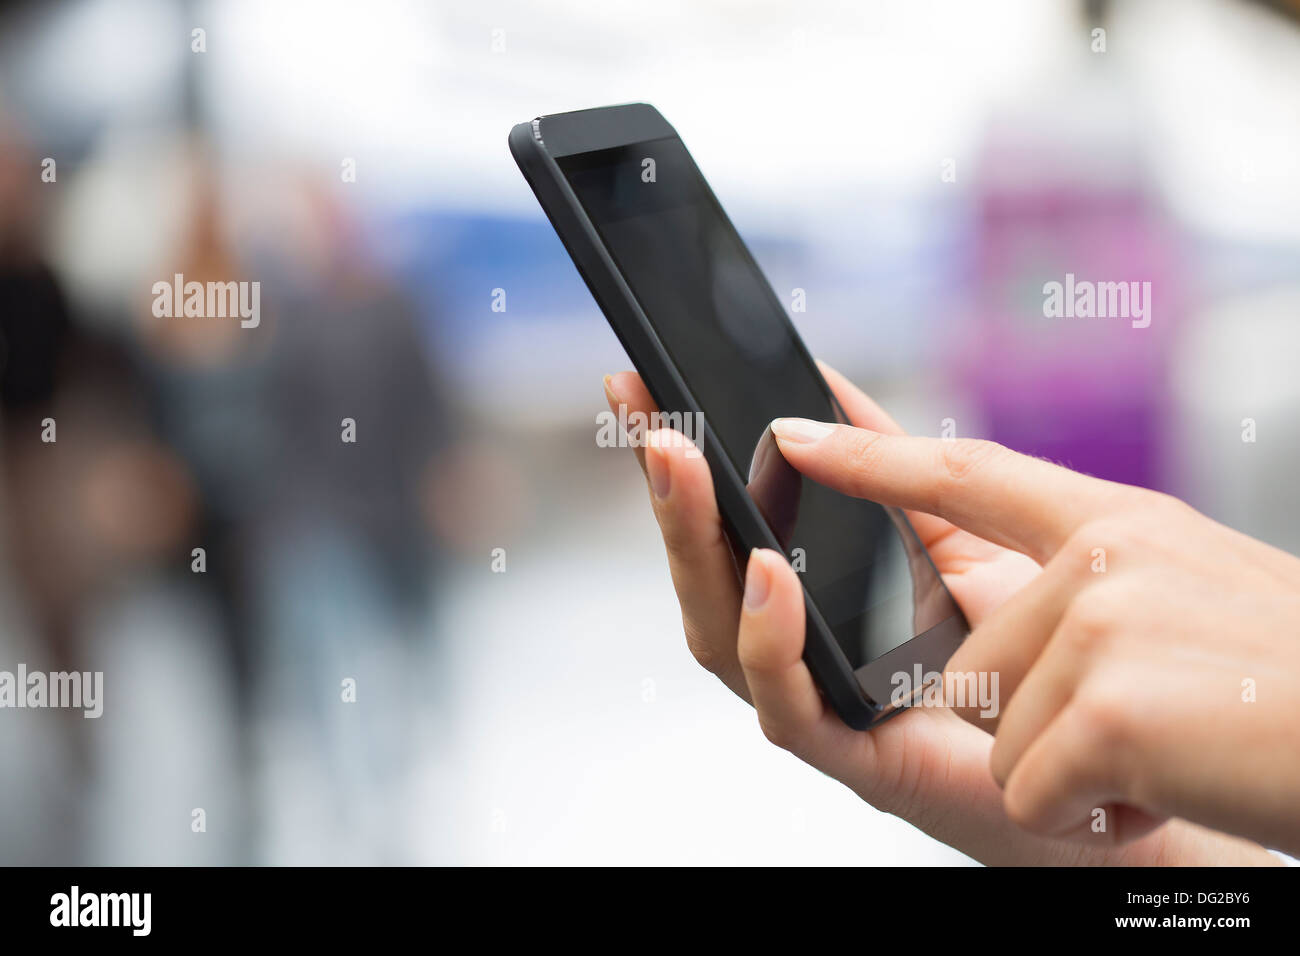 Female mobile train phone tgv message sms - Stock Image